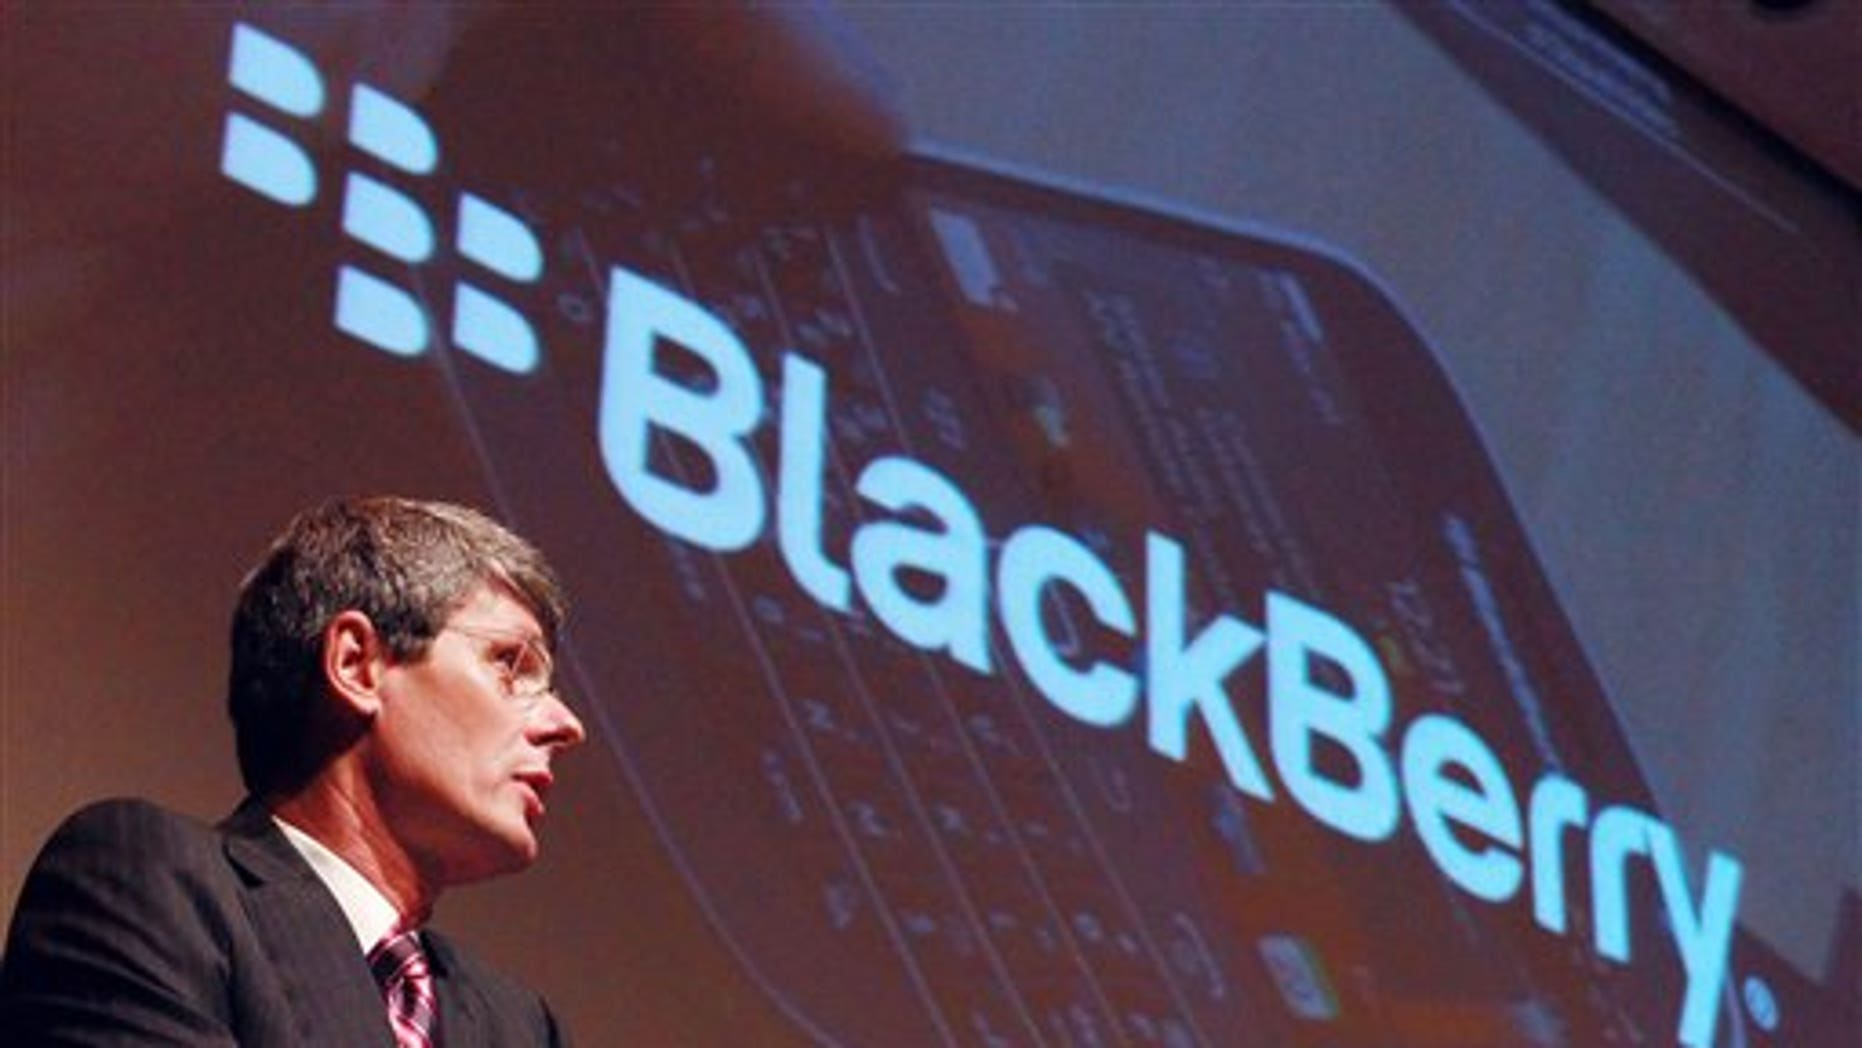 July 10, 2012: Thorsten Heins, President and CEO of Research in Motion (RIM), speaks at the company's Annual General Meeting, less than two weeks after announcing disappointing financial results, deep job cuts and the latest delay in its BlackBerry 10 software,  in Waterloo, Ontario.